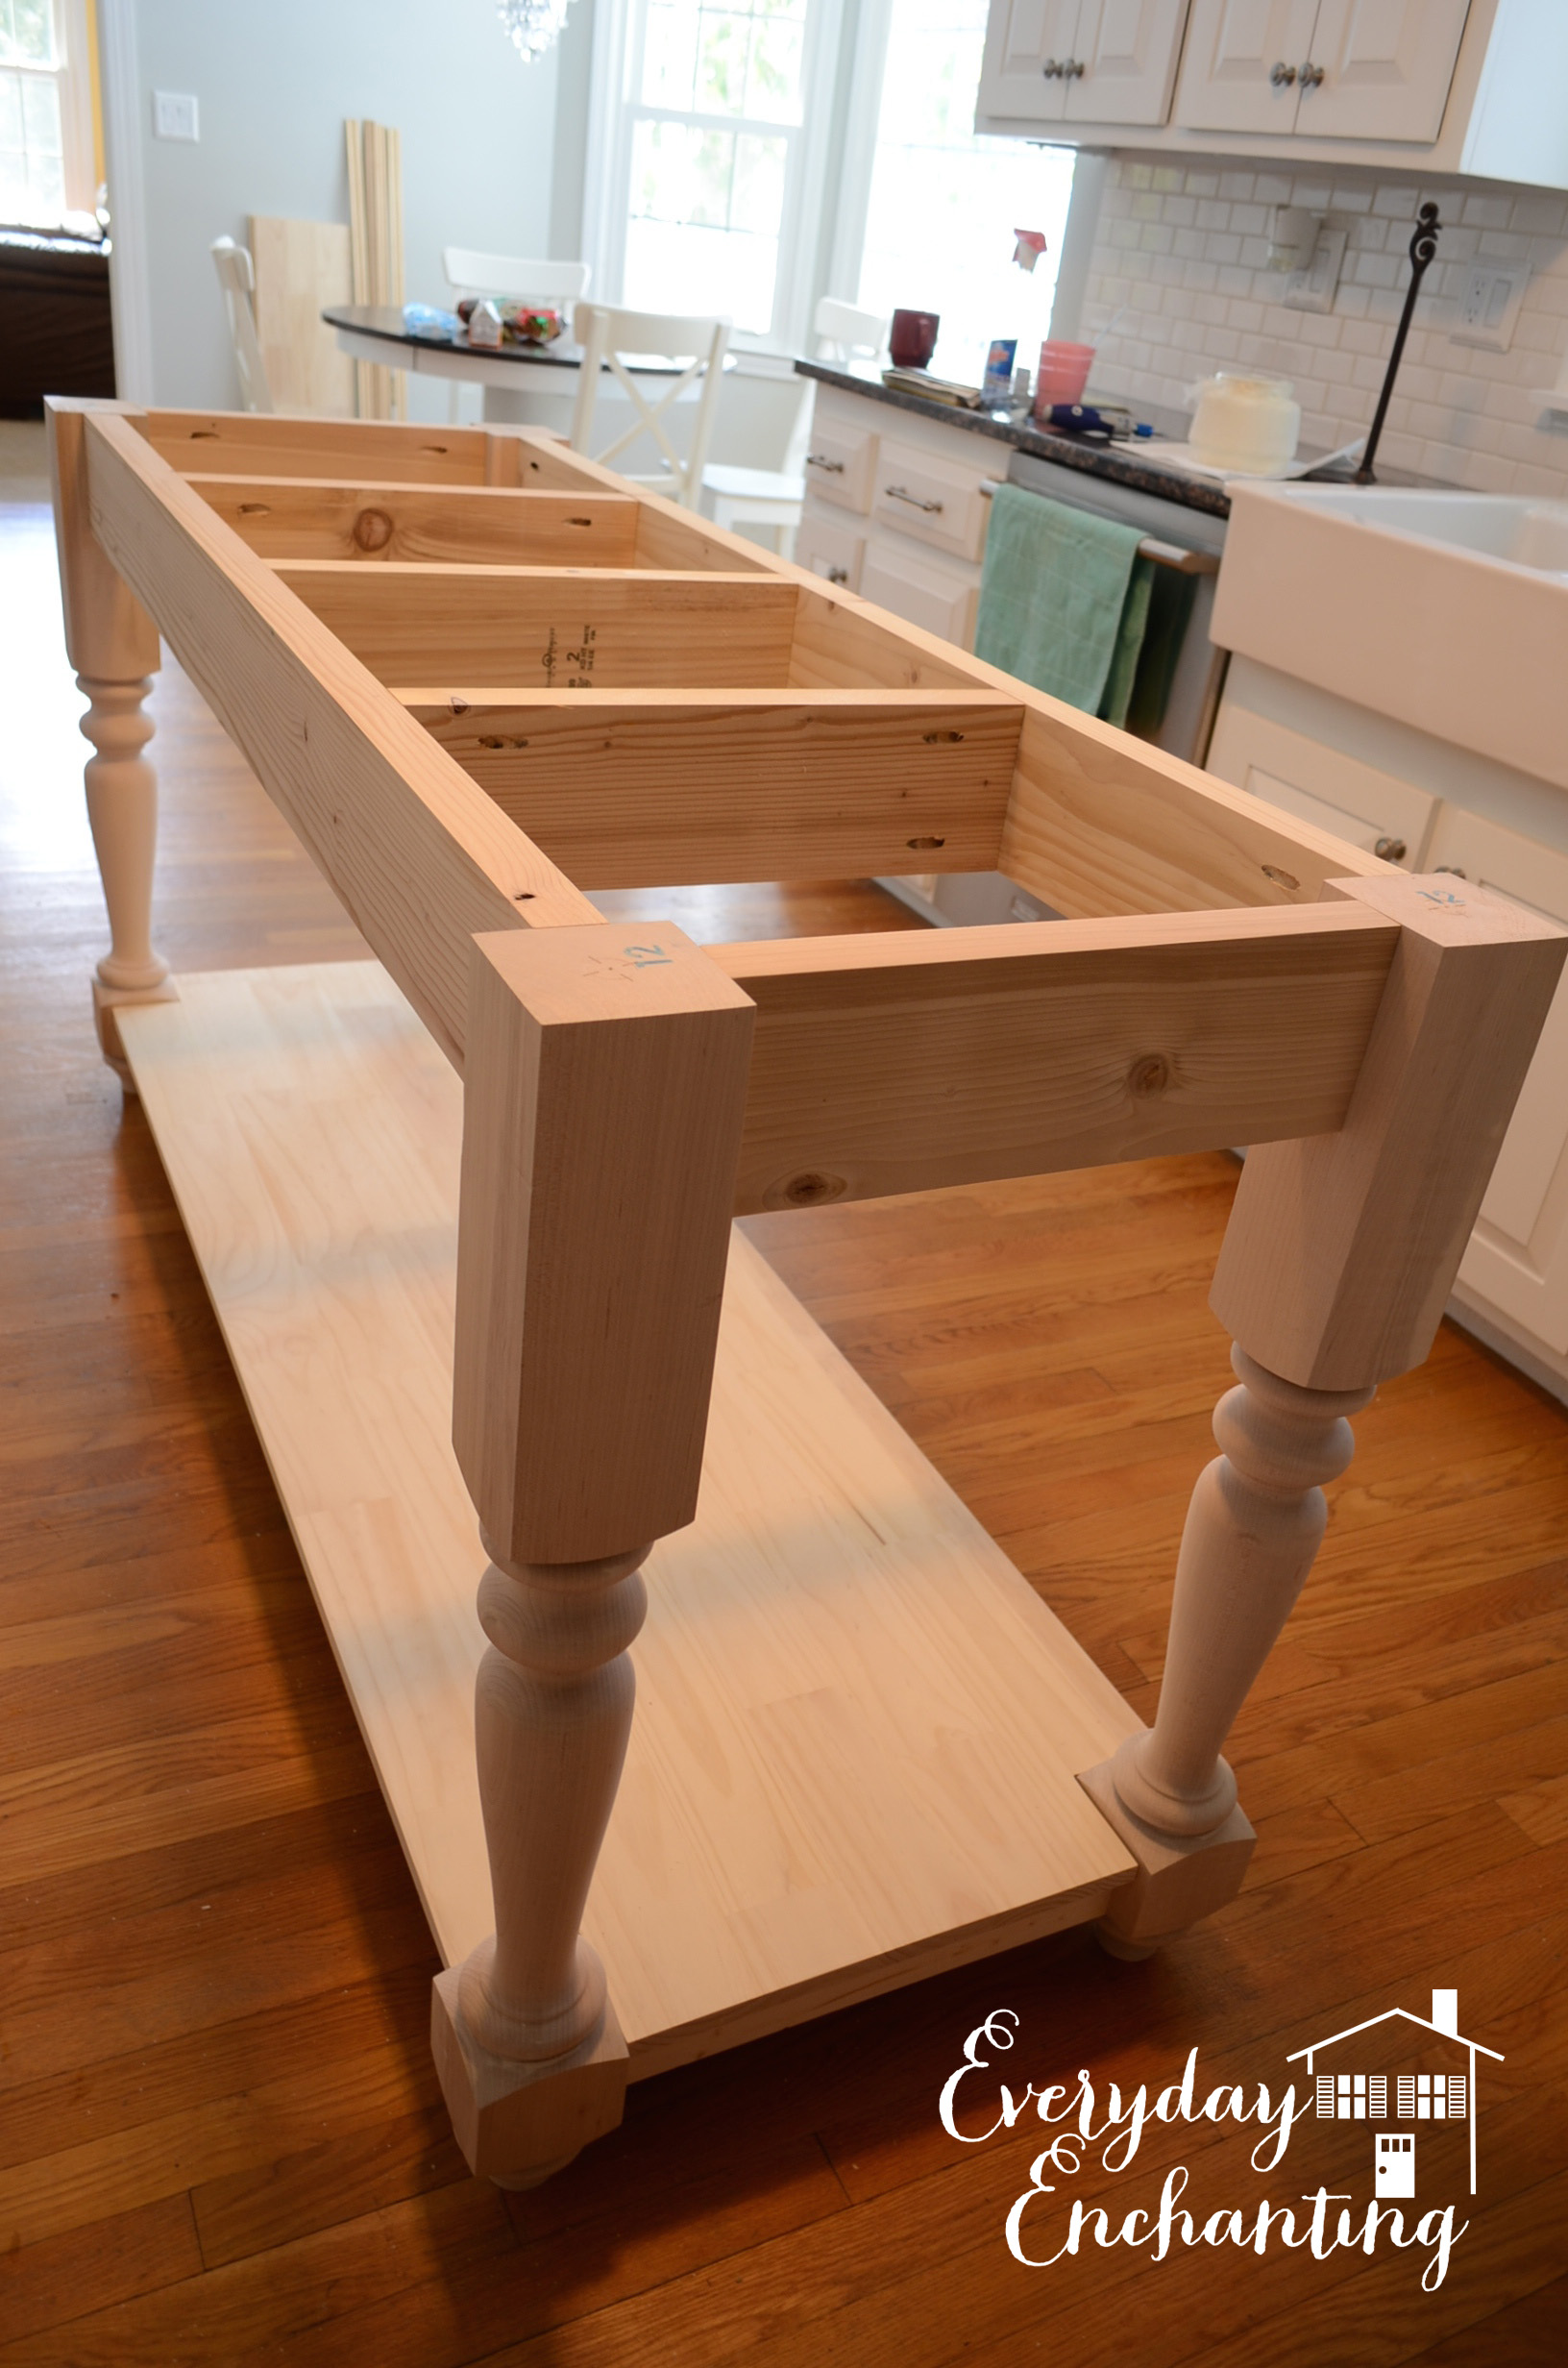 Uncategorized How To Build A Kitchen Island remodelaholic white kitchen overhaul with diy marble island building the base everyday enchanting on remodelaholic